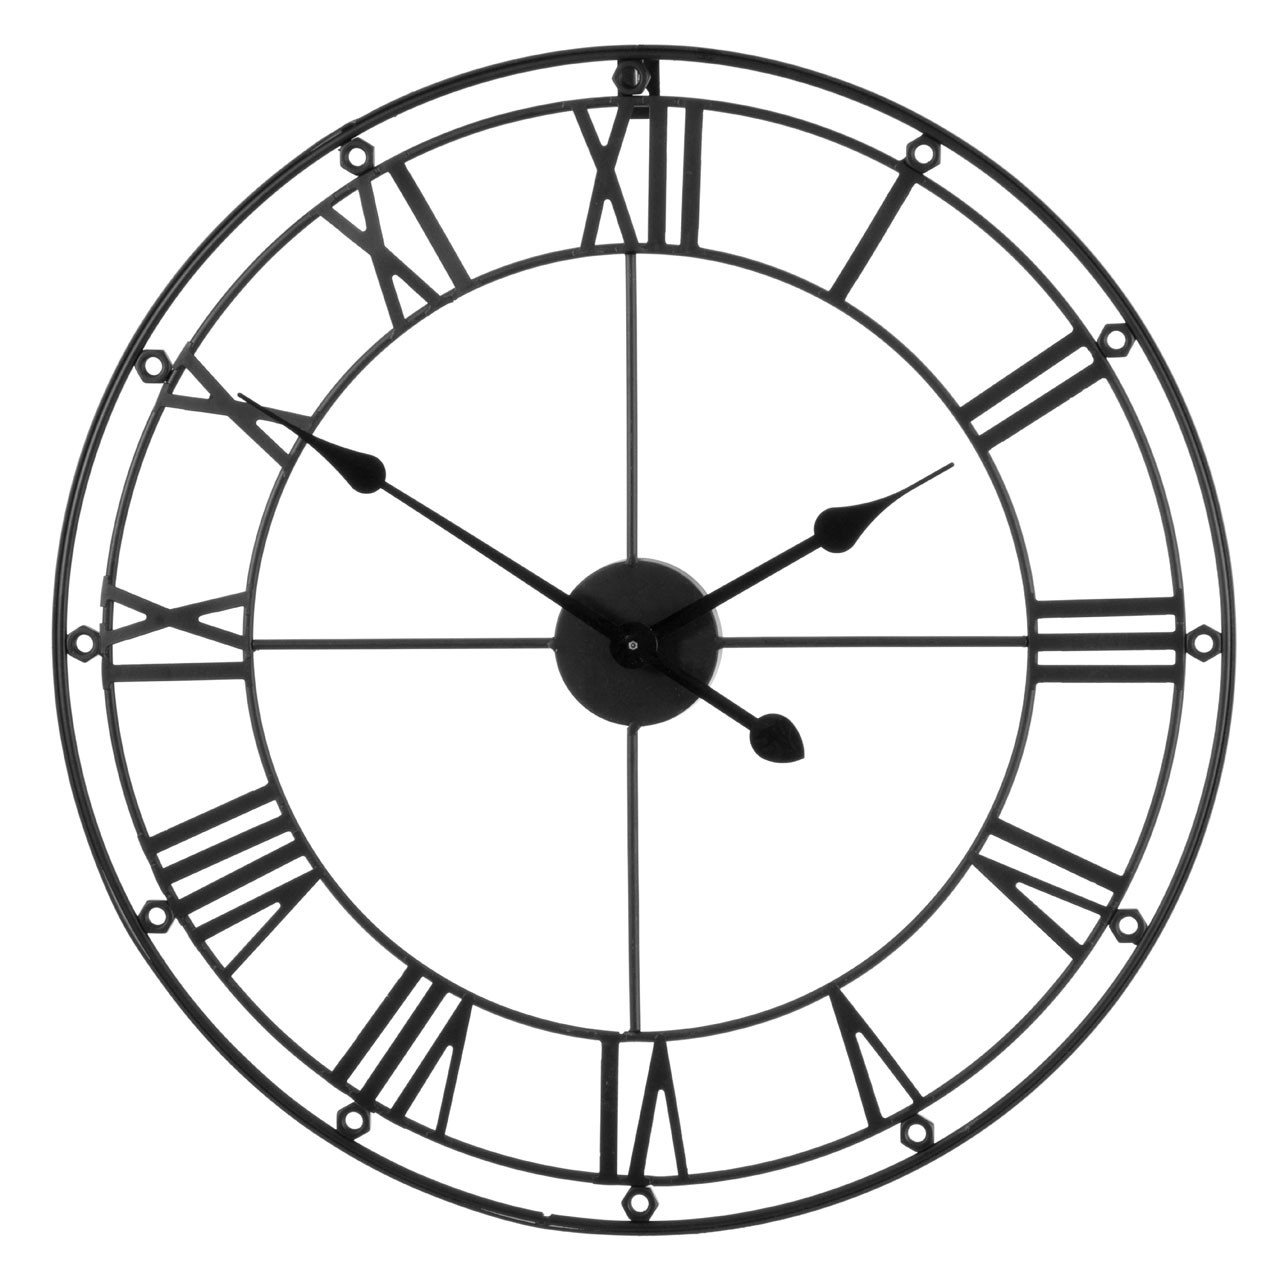 Prime Furnishing Metal Wall Clock With Gold Hands -Matte Black